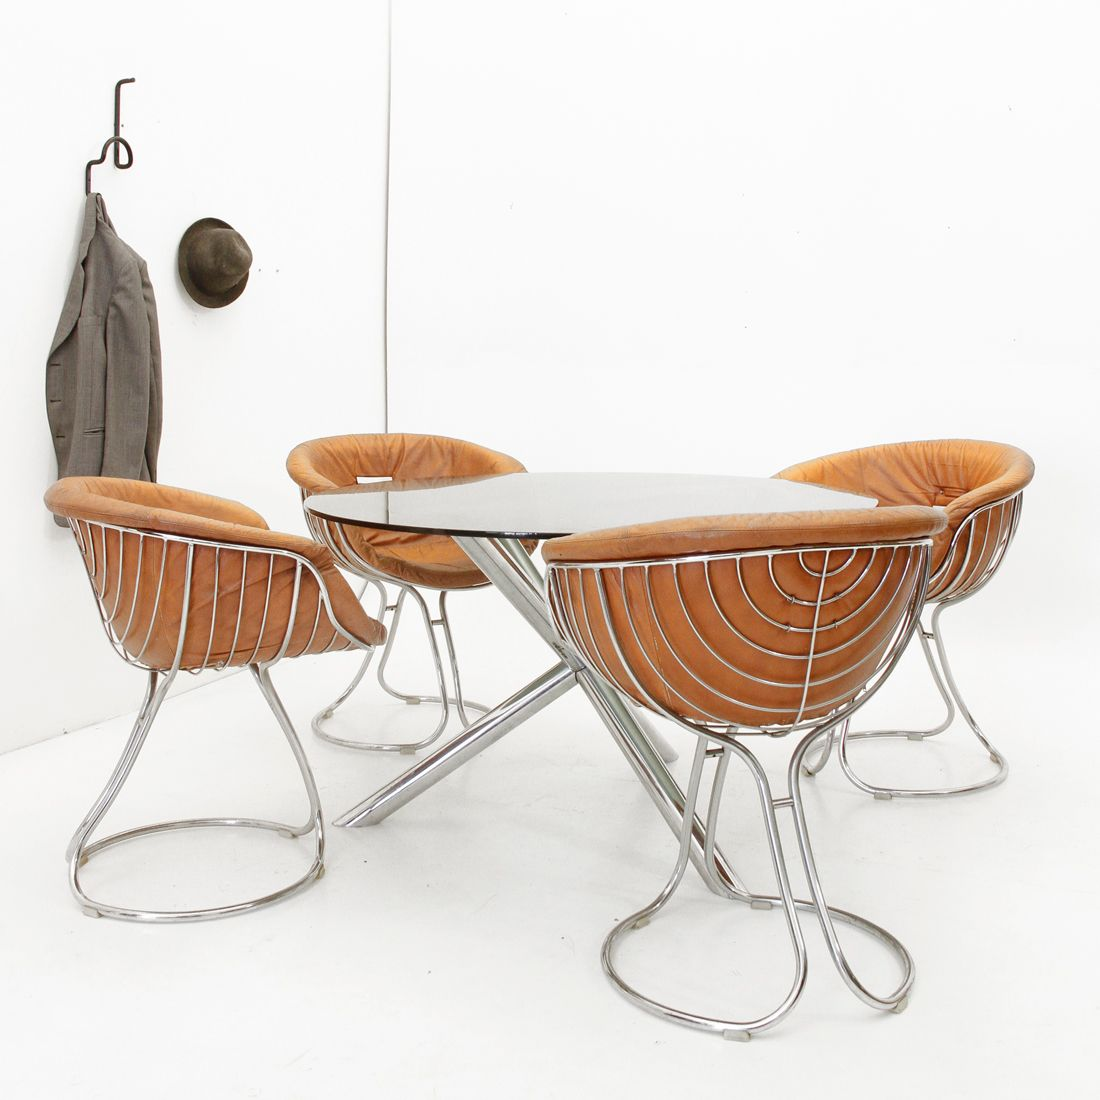 Chromed base dining table by roche bobois 1970s for sale for Table basse ovni roche bobois